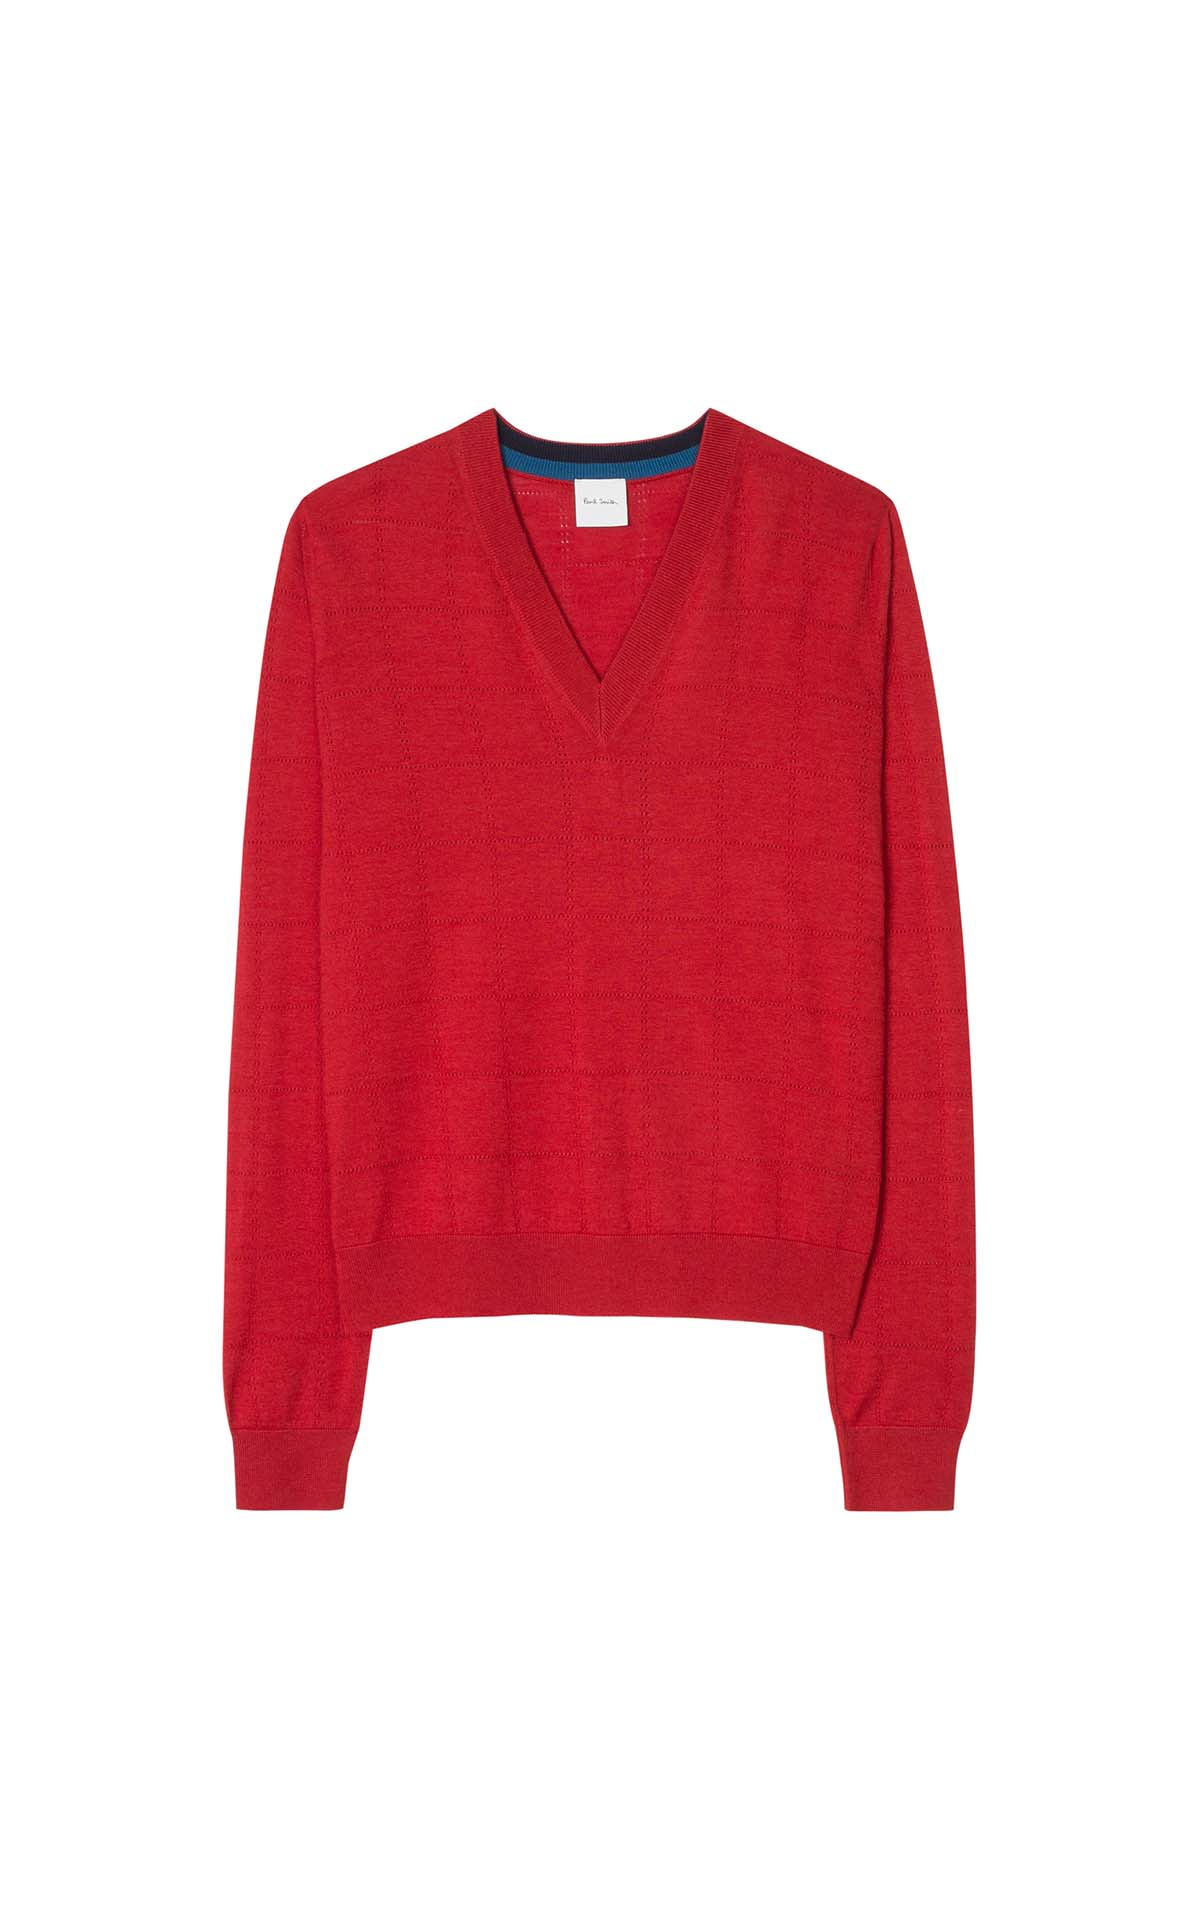 Paul Smith Women's knitted jumper at The Bicester Village Shopping Collection